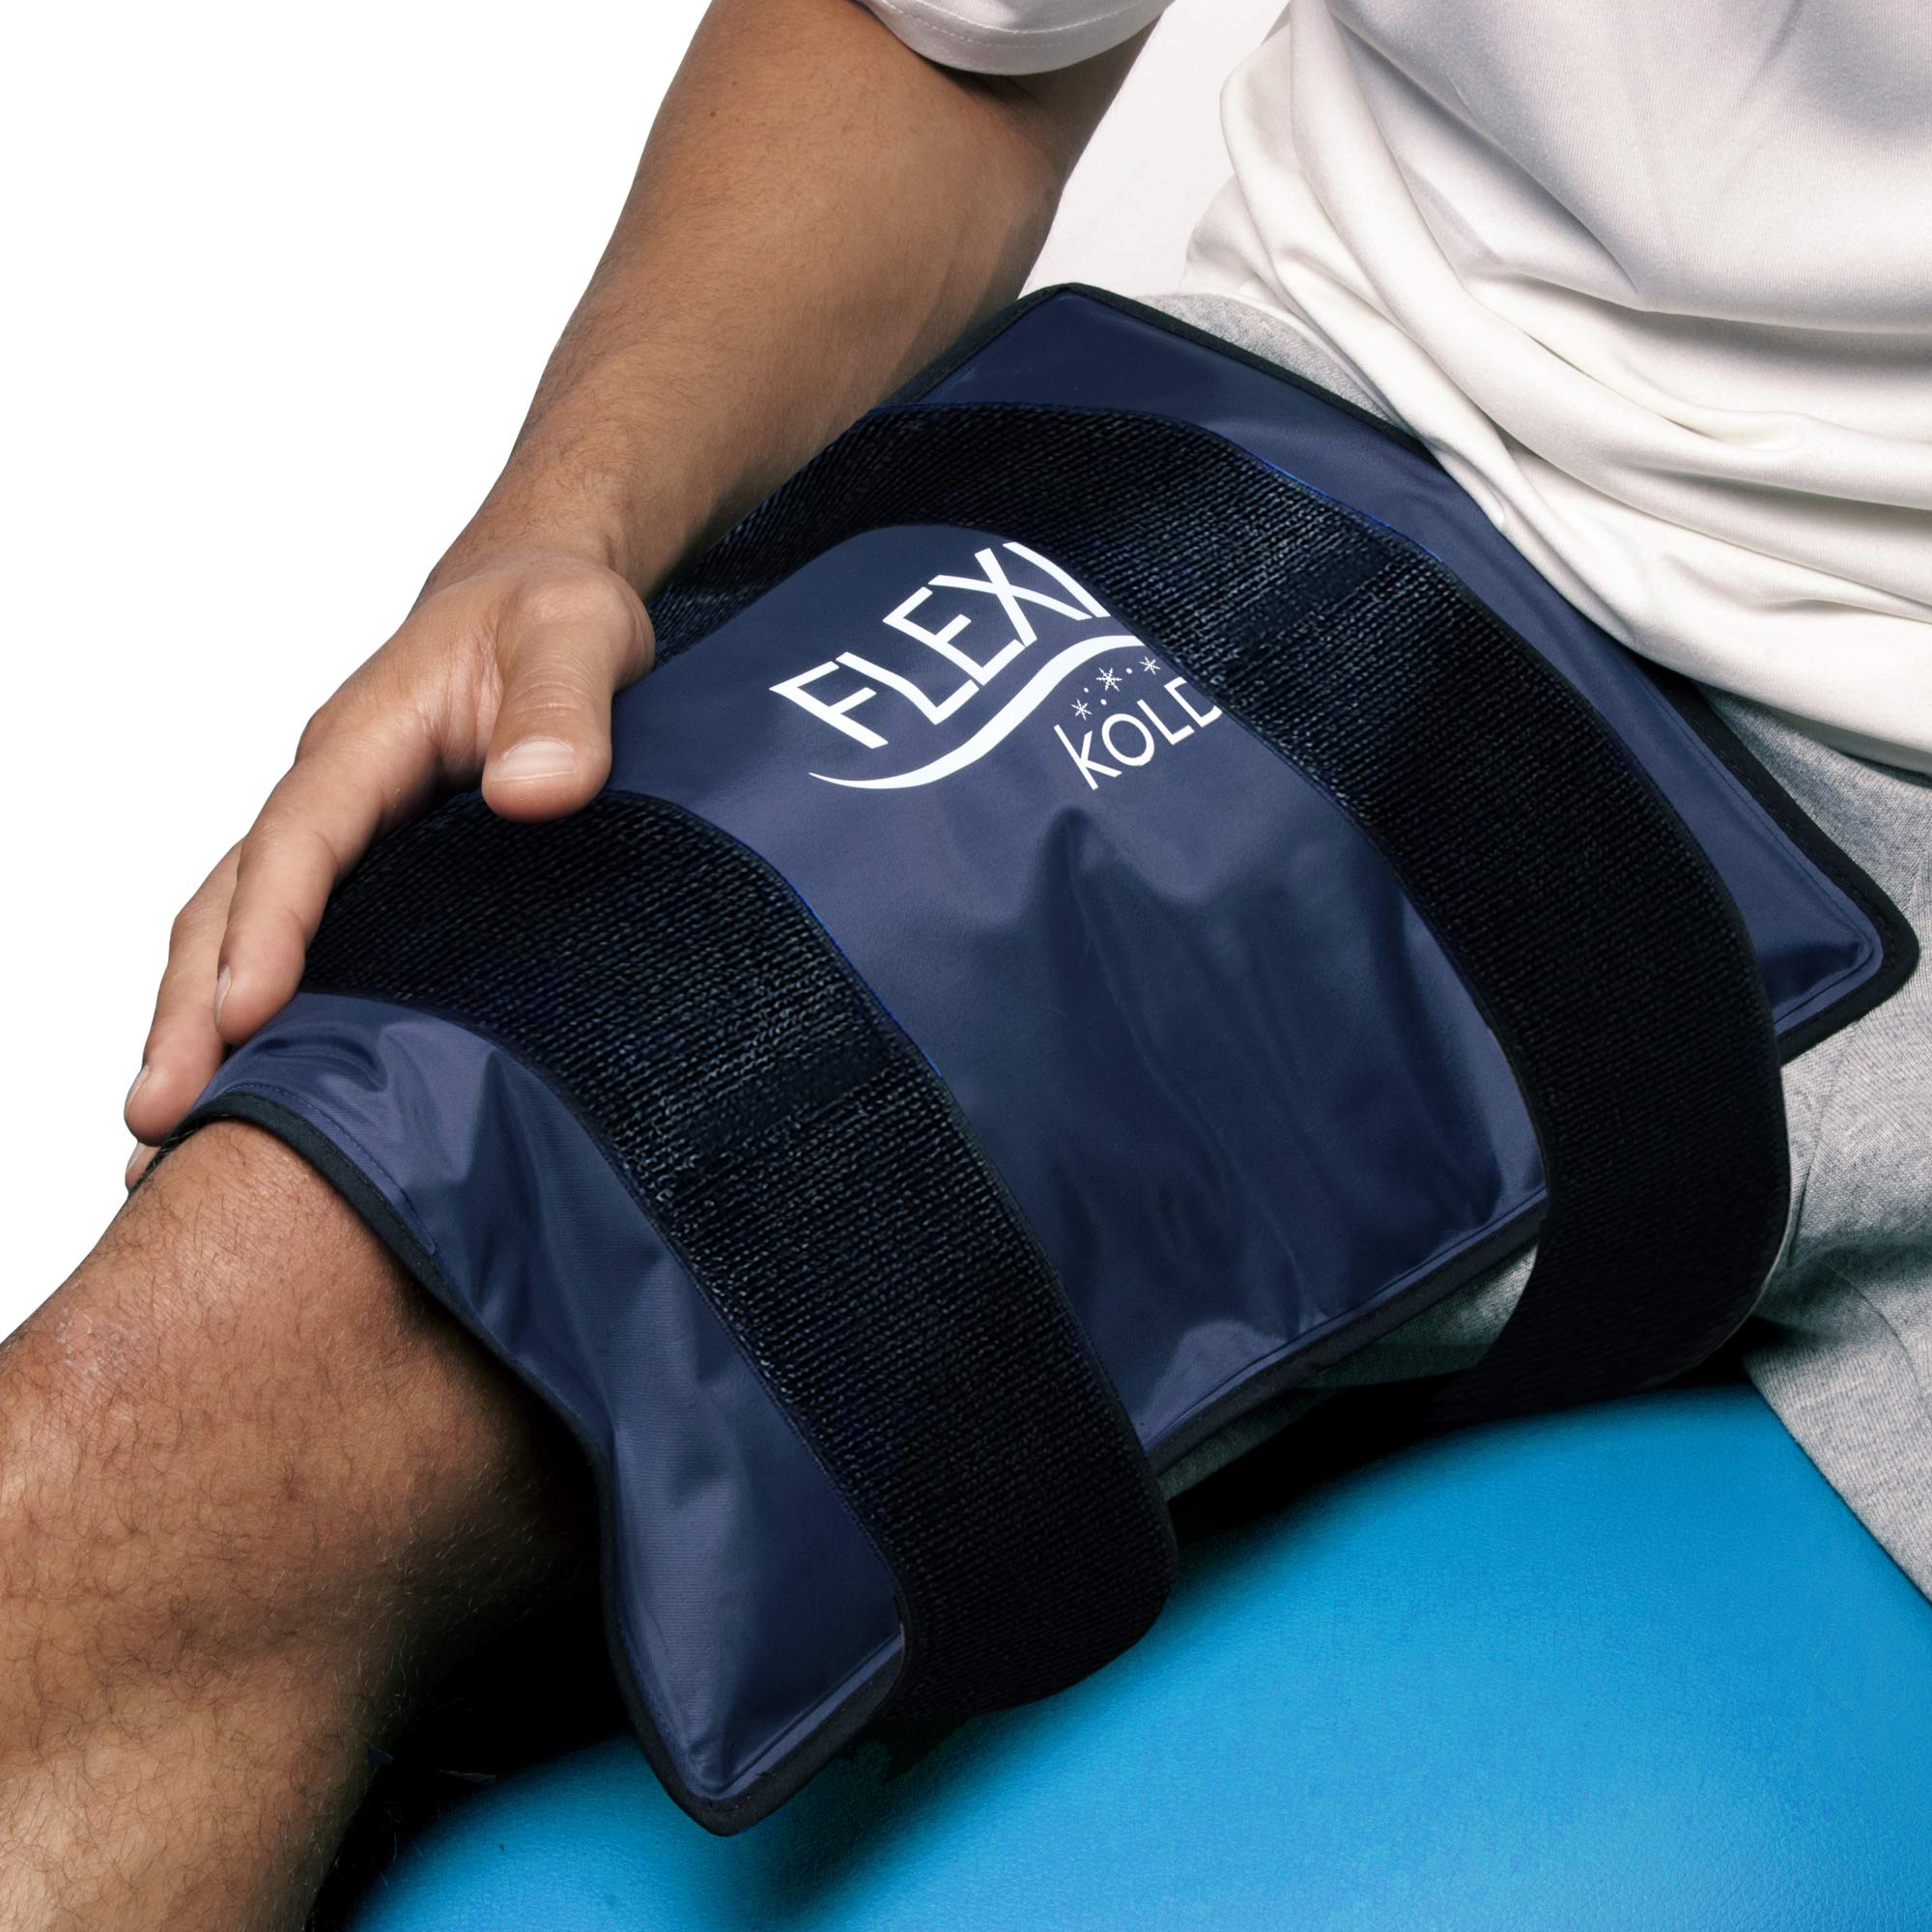 FlexiKold Gel Ice Pack w/Straps (Standard Large: 10.5'' x 14.5'') - One (1) Reusable Cold Therapy (for Pain and Injuries, wrap Around Knee, Shoulder, Back, Ankle, Neck, Hip, Wrist) - 6300 Cold-Strap by NatraCure